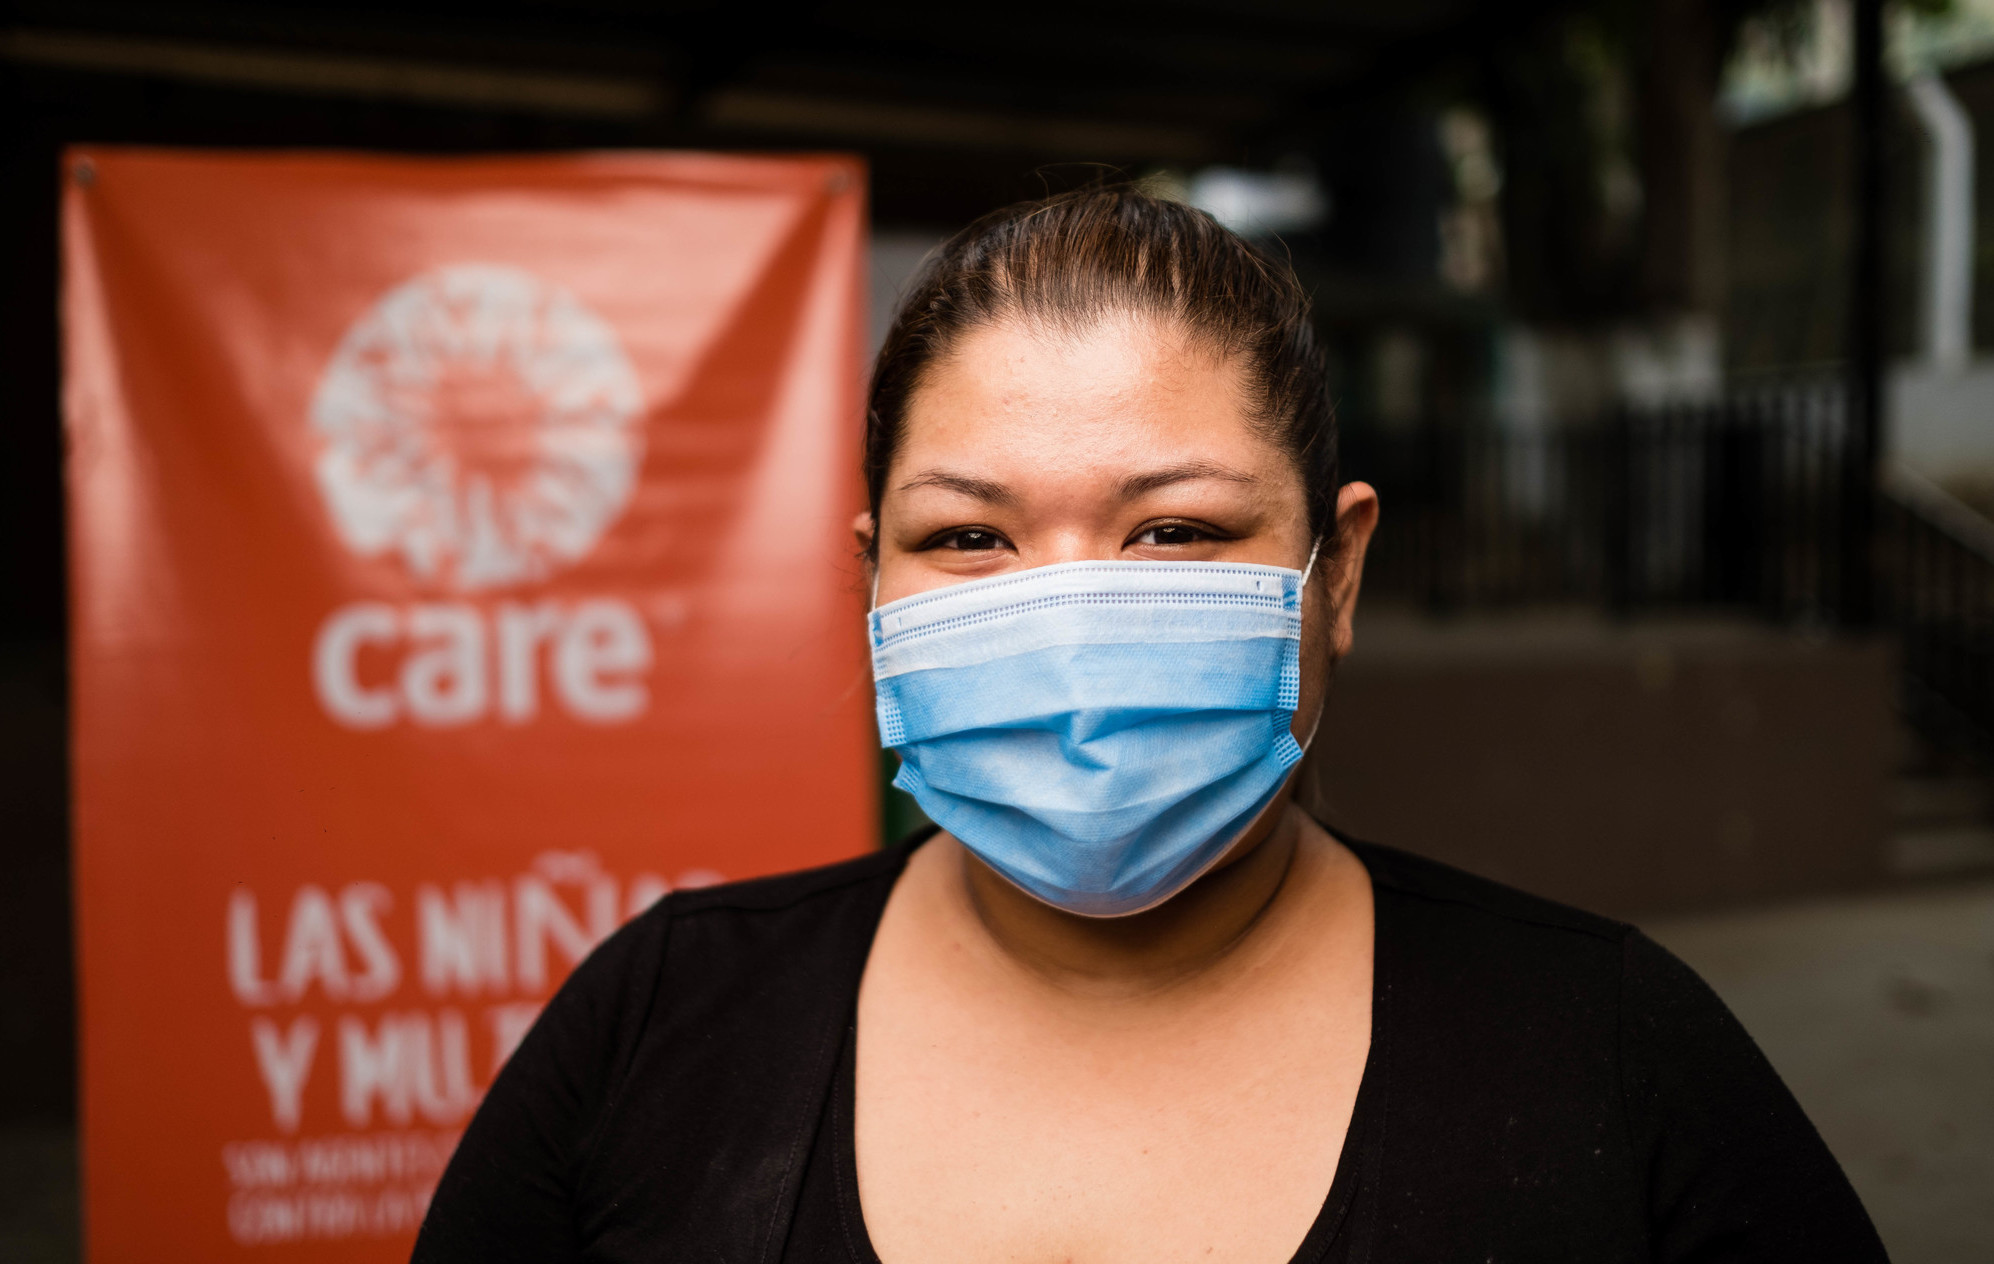 A woman in a mask stands in front of a CARE sign.